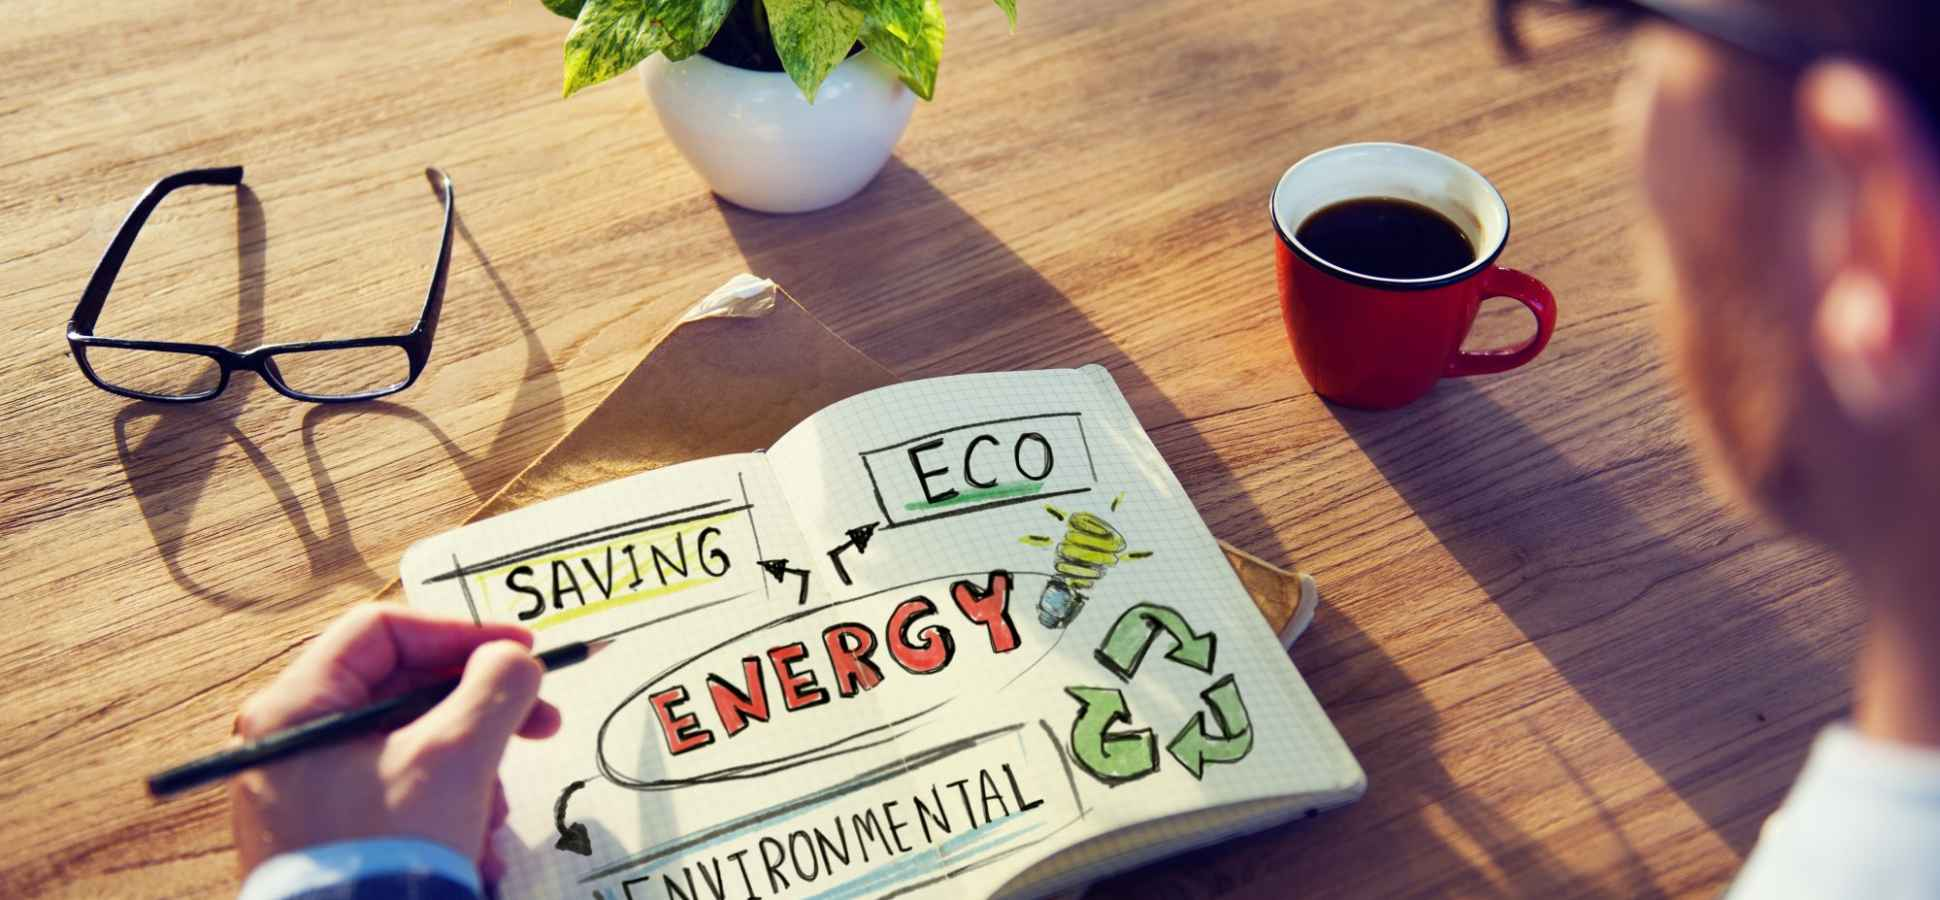 Here Are the Sustainability Marketing Tactics Your Startup Should Be Using Now